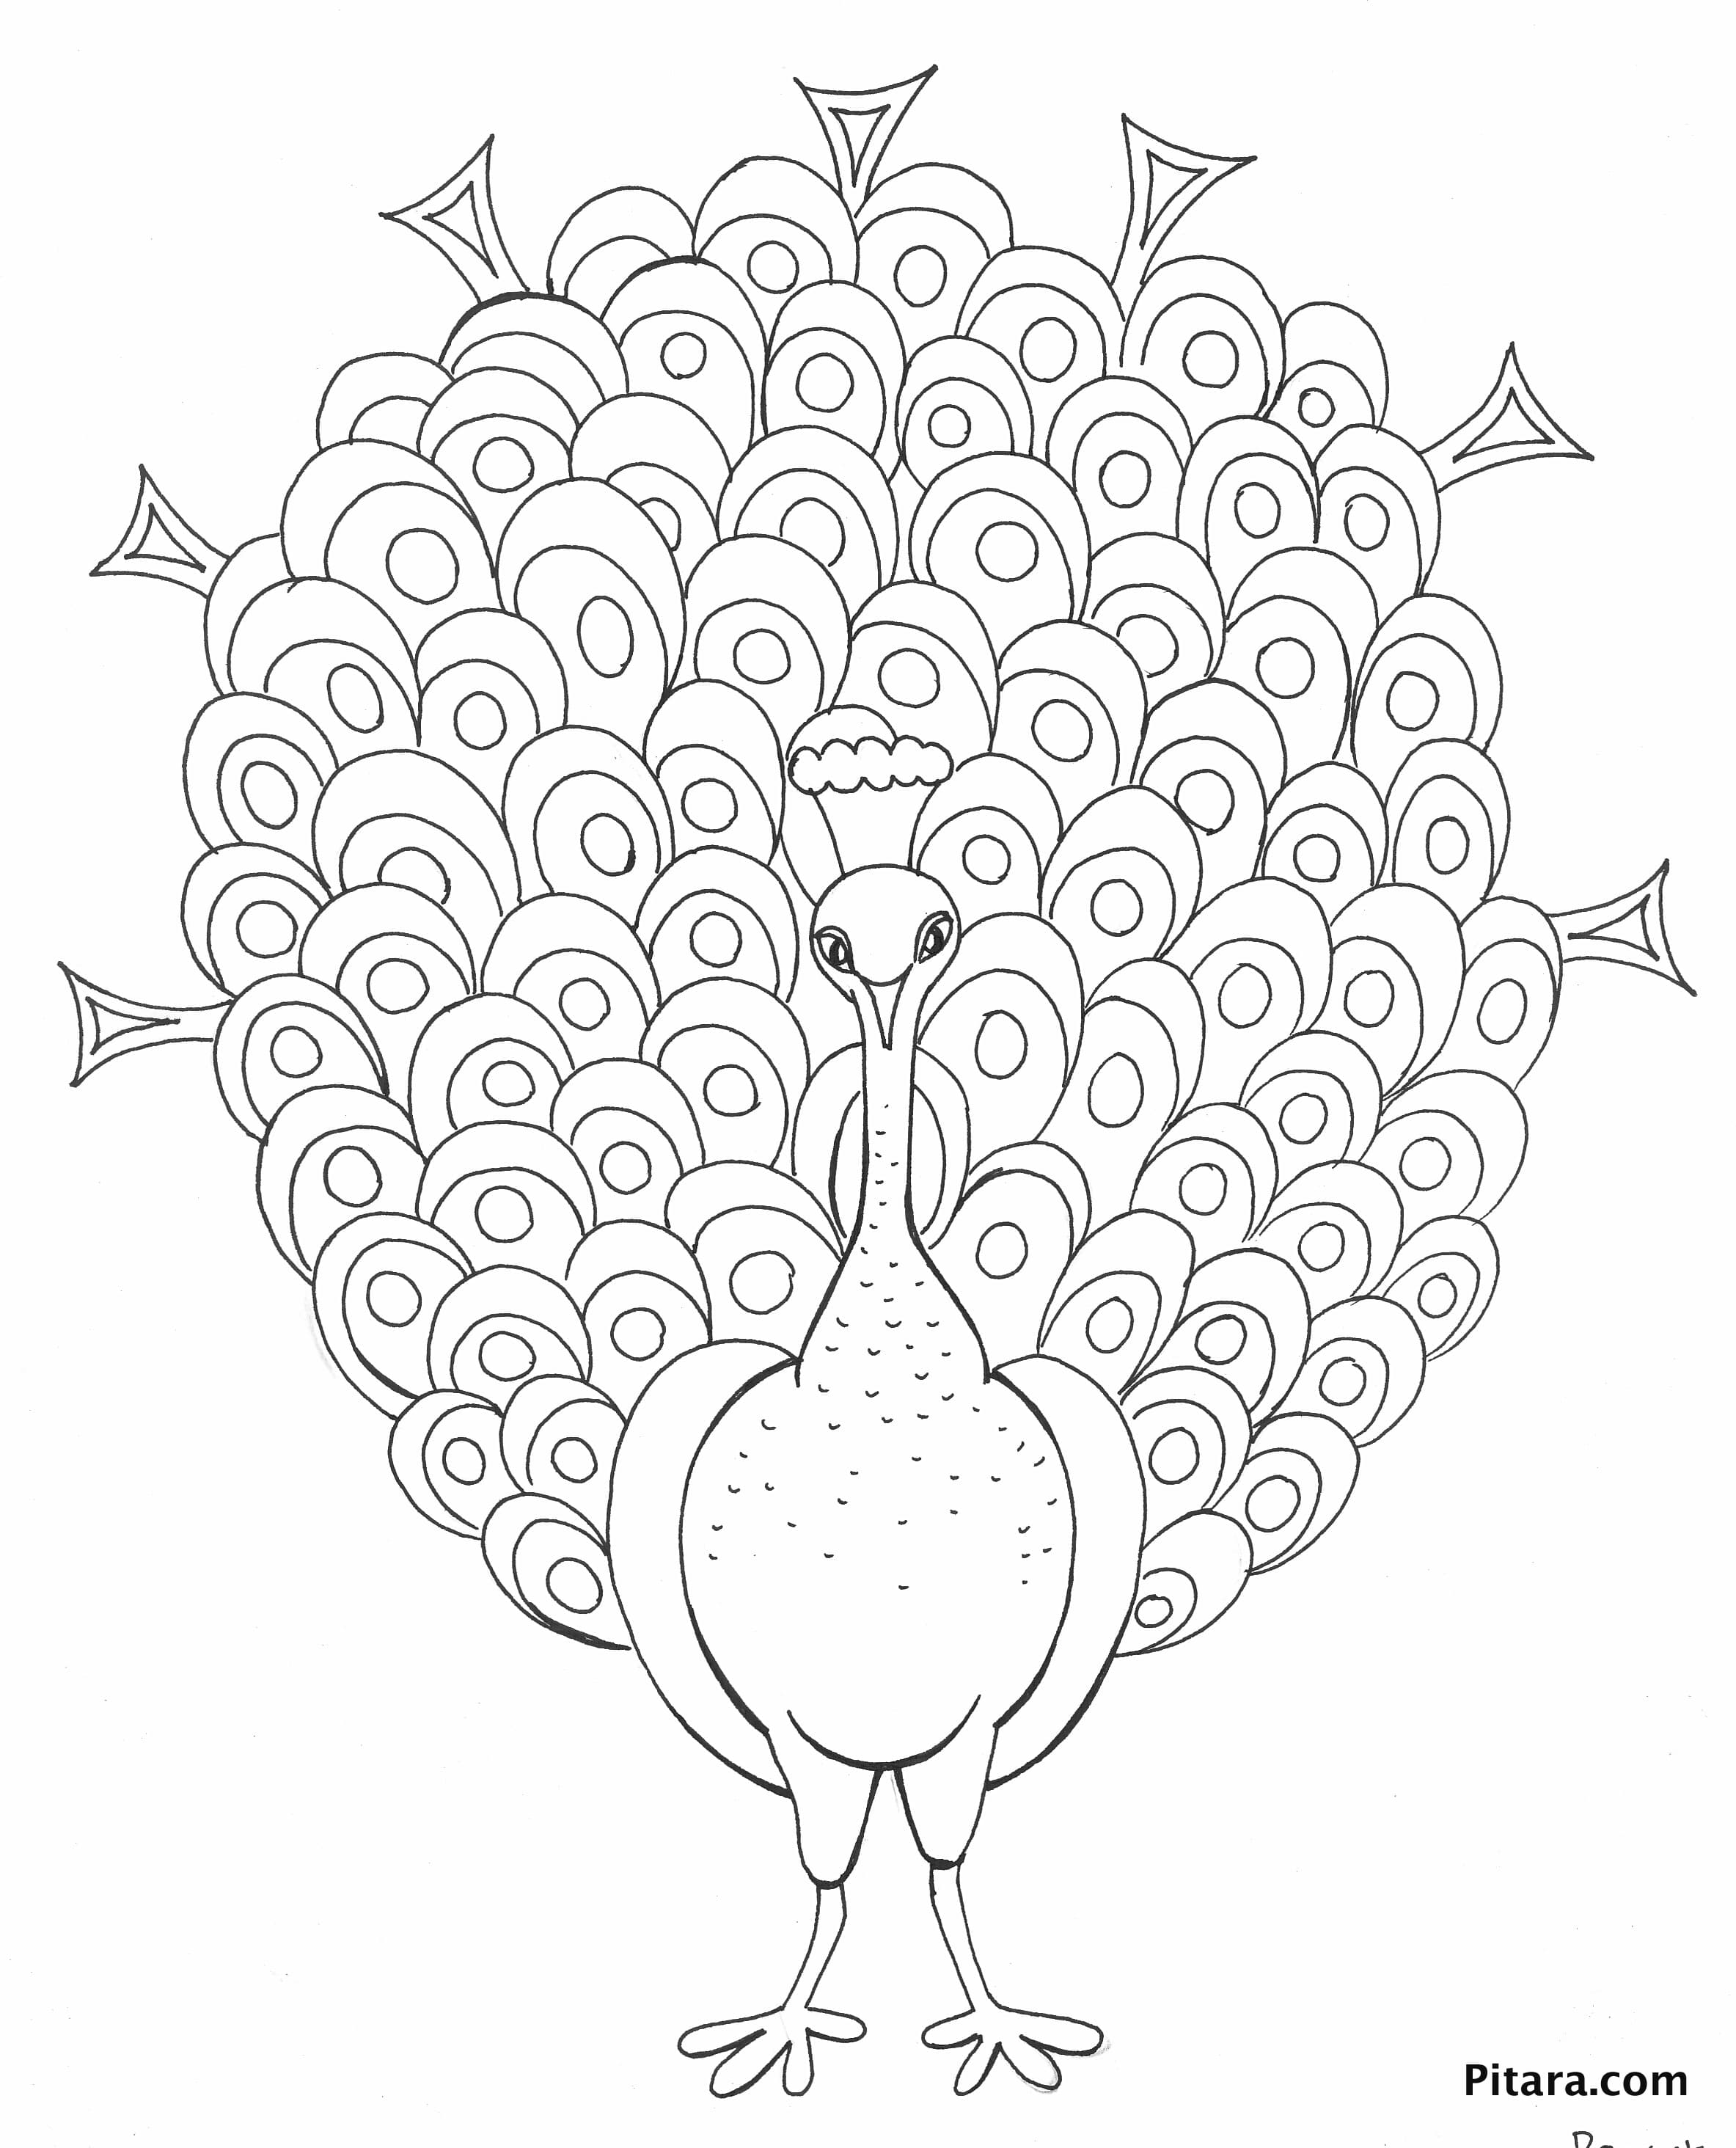 peacock color page peacock coloring page pitara kids network color page peacock